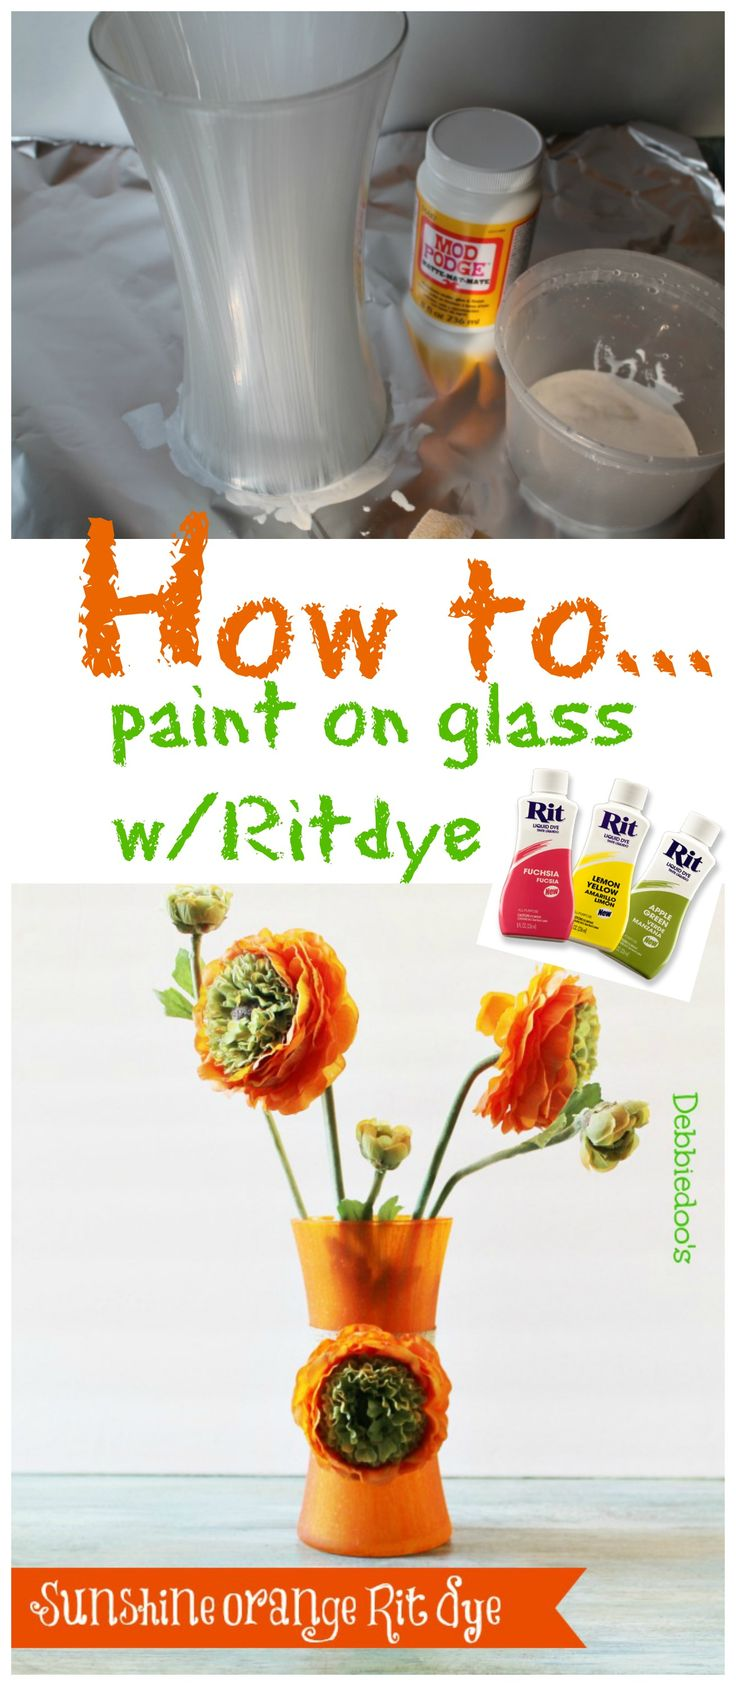 How to paint on glass with #ritdye and #modpodge  Rit Dye can also be used as a wood stain!  Imagine all of the color combinations!!!